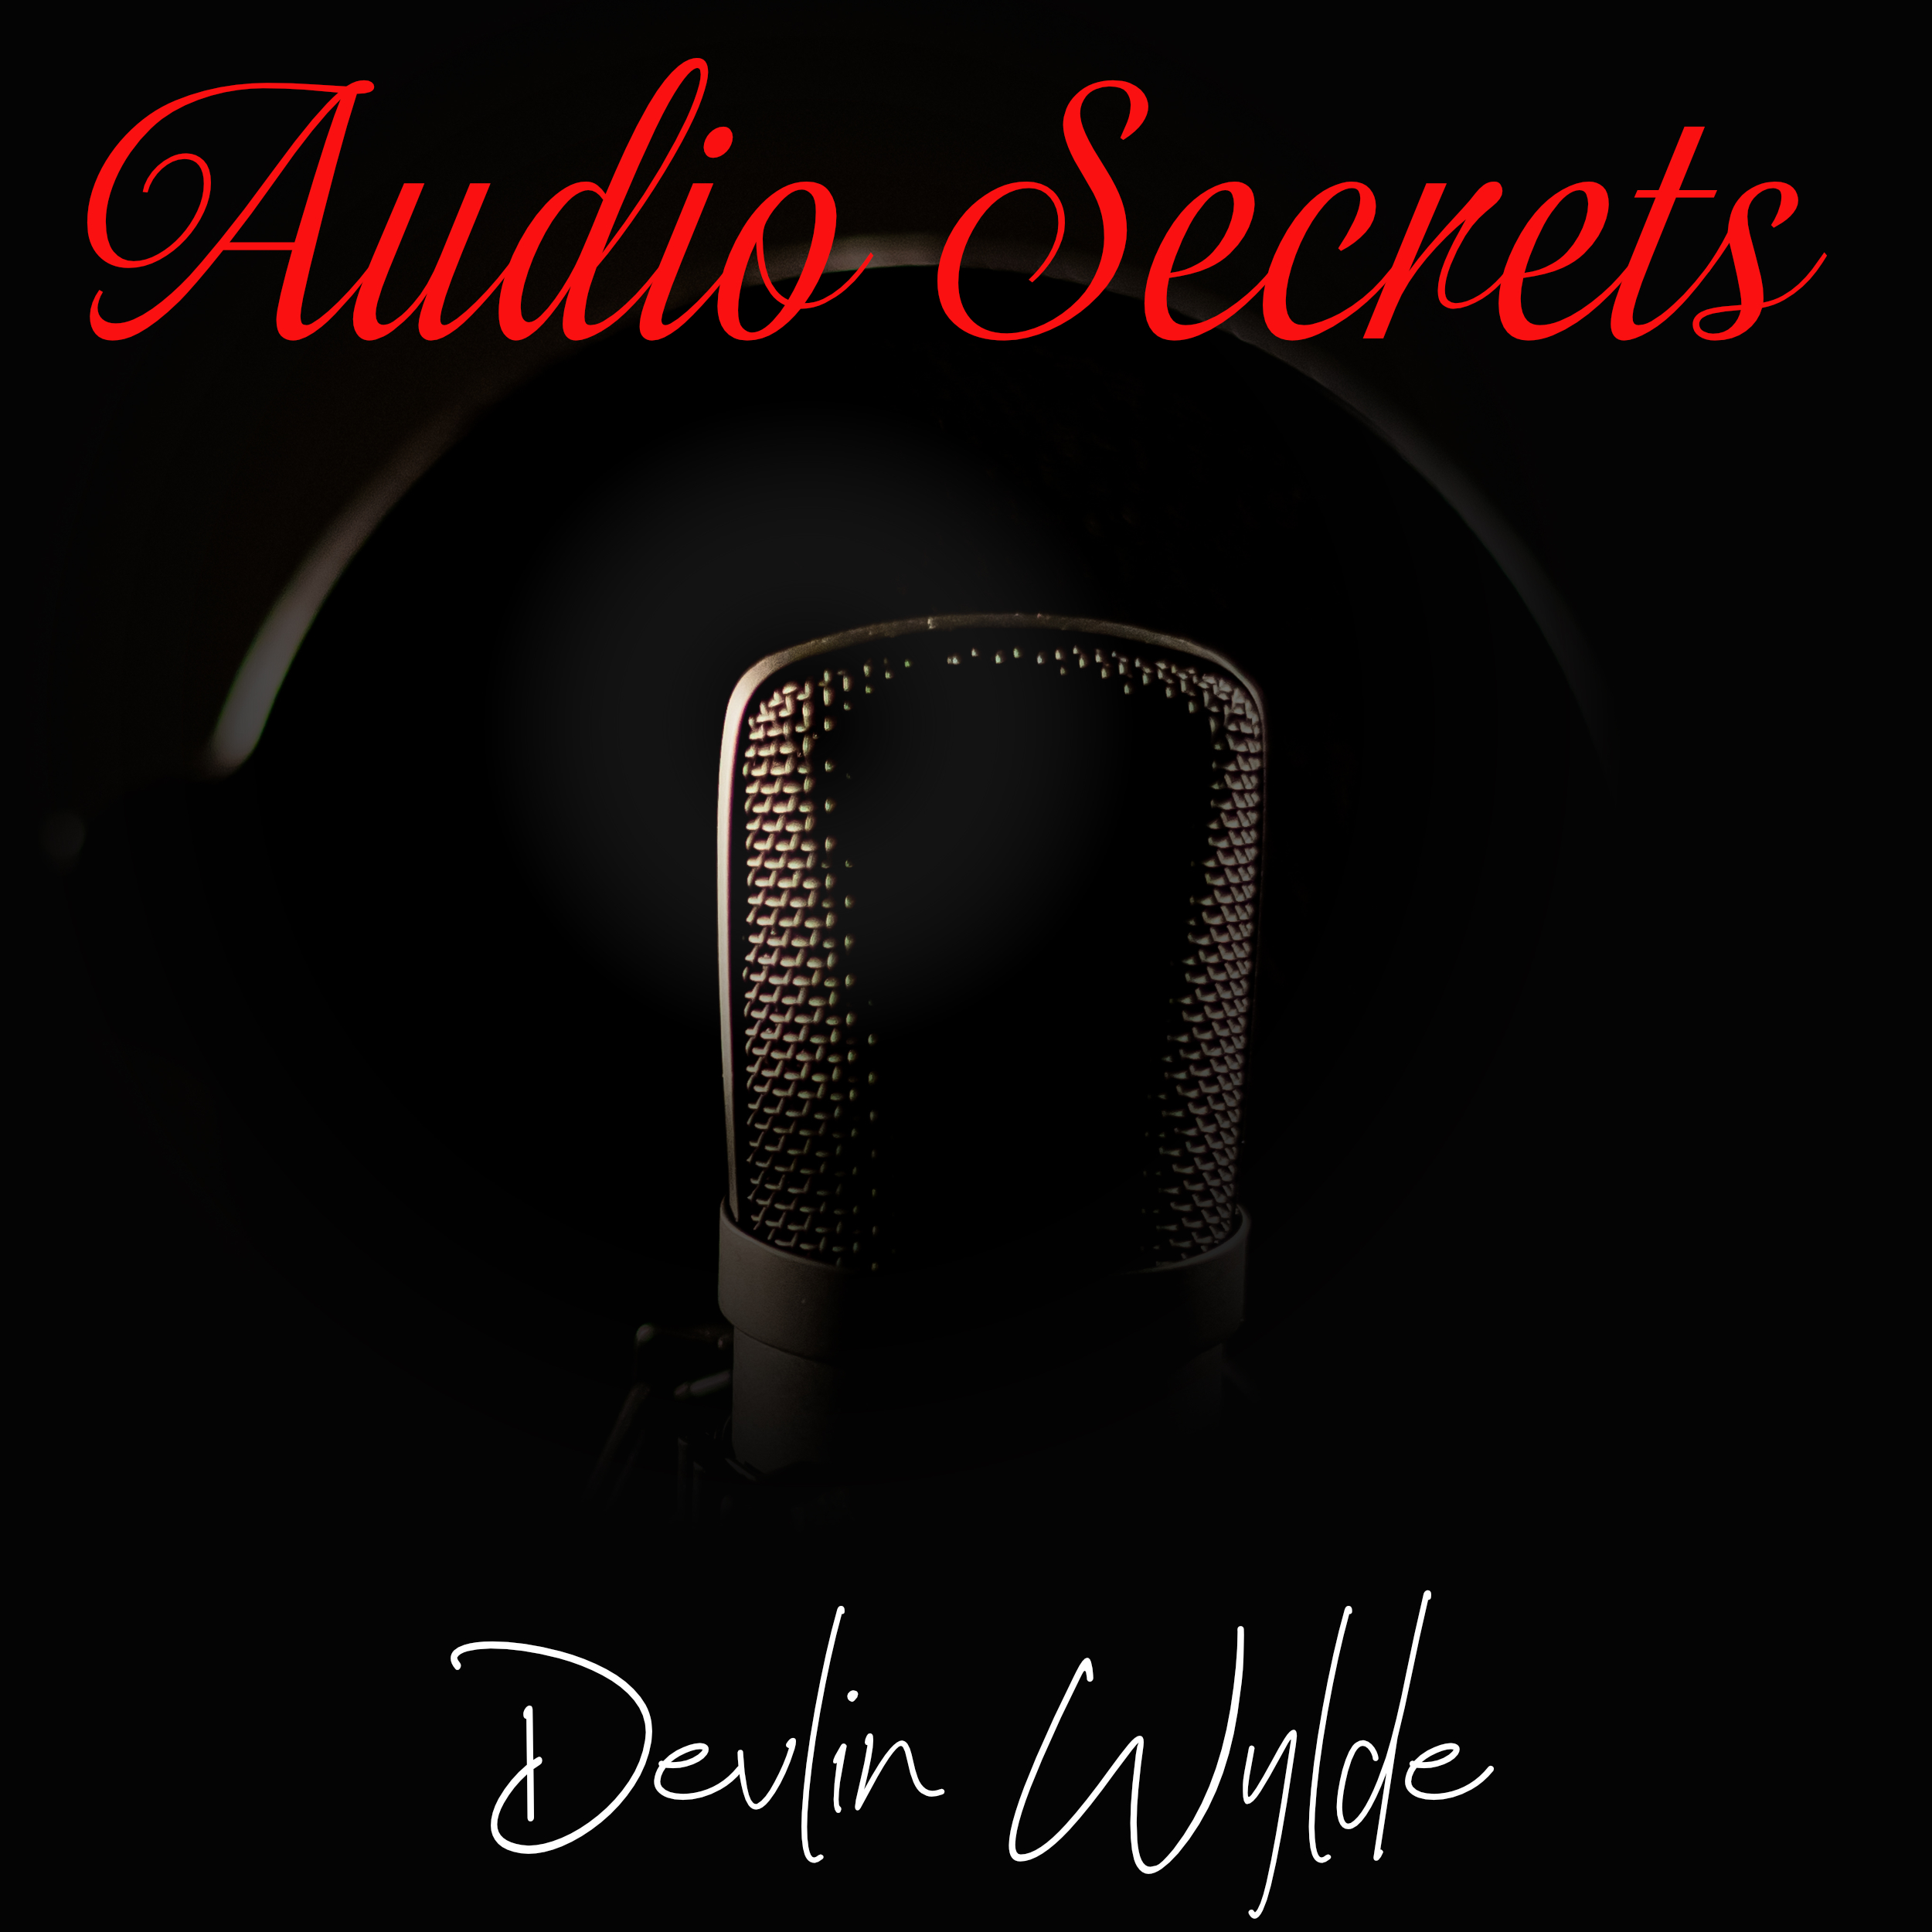 Audio Secrets - Your questions answered